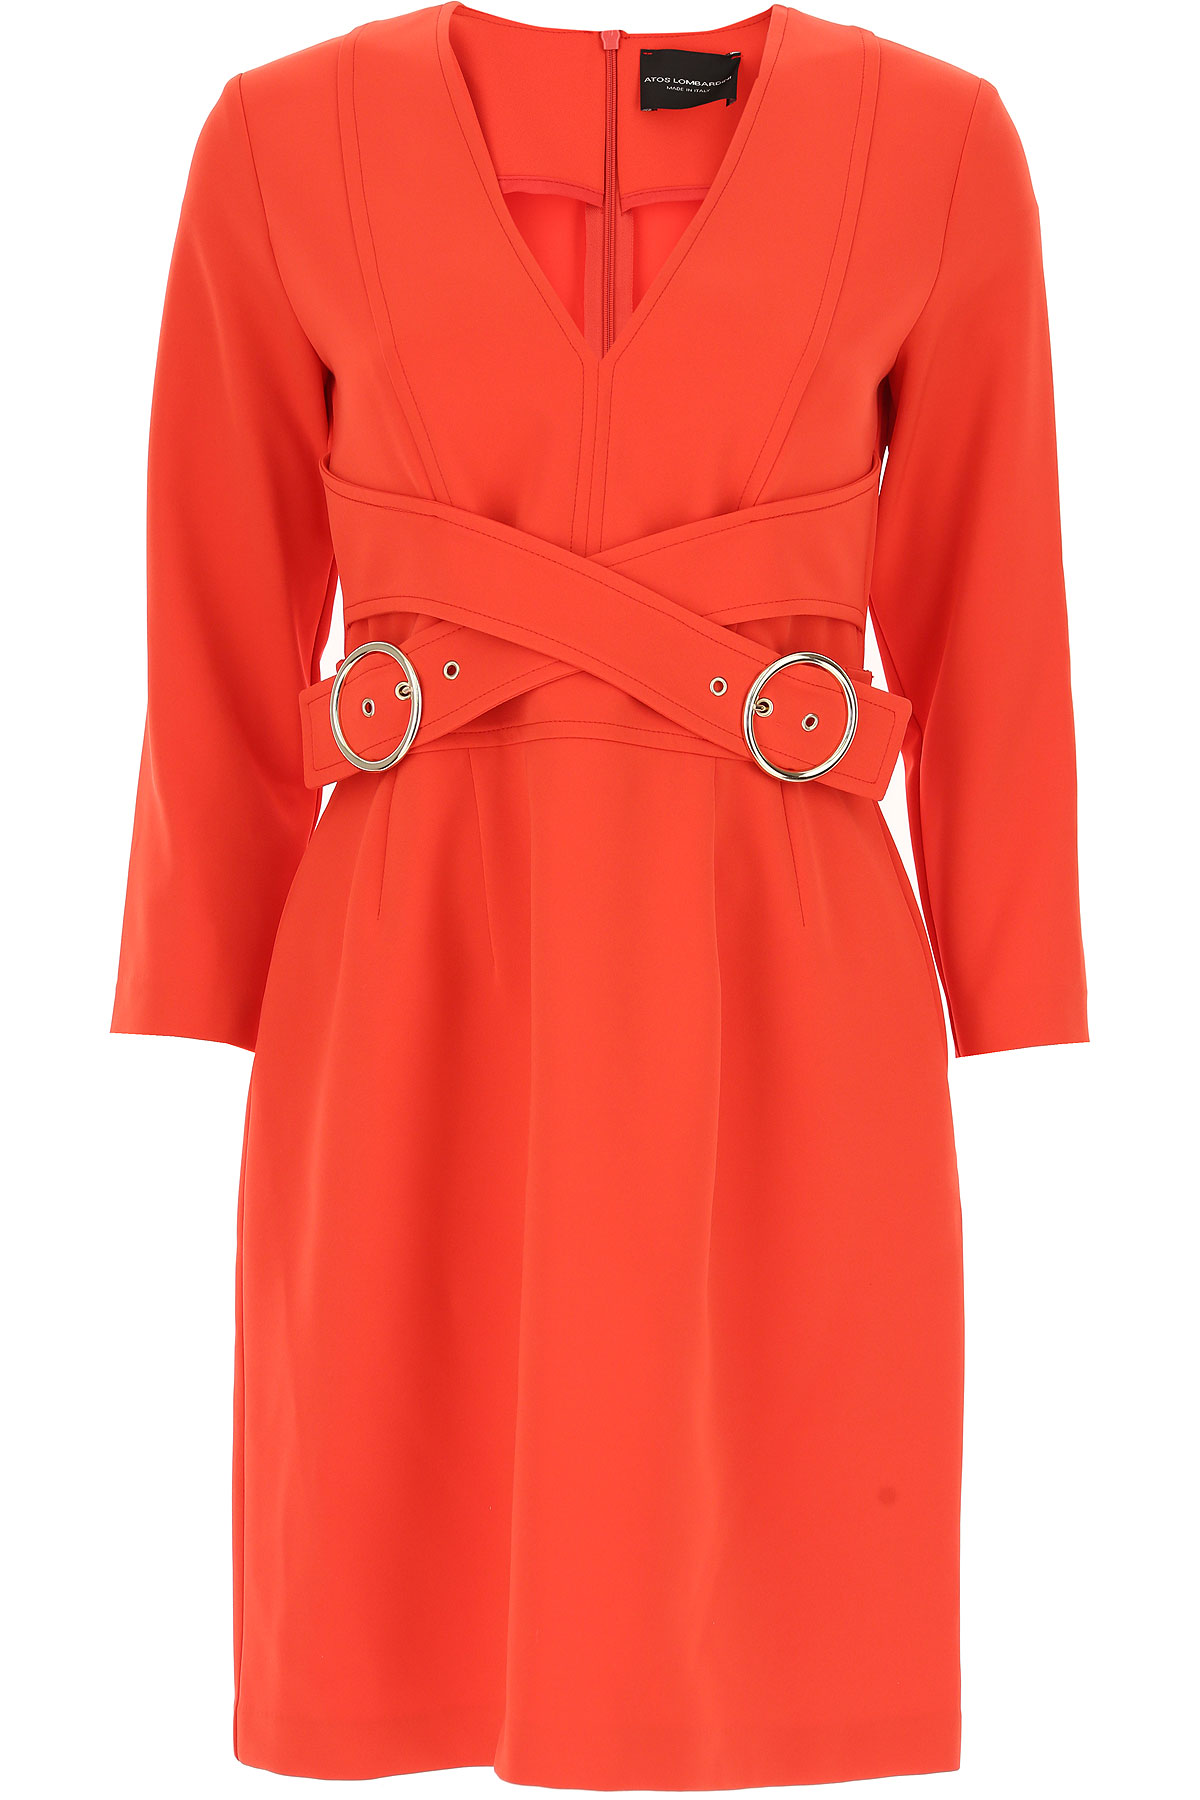 Image of Atos Lombardini Women\'s Coat, Coral, polyester, 2017, 10 6 8